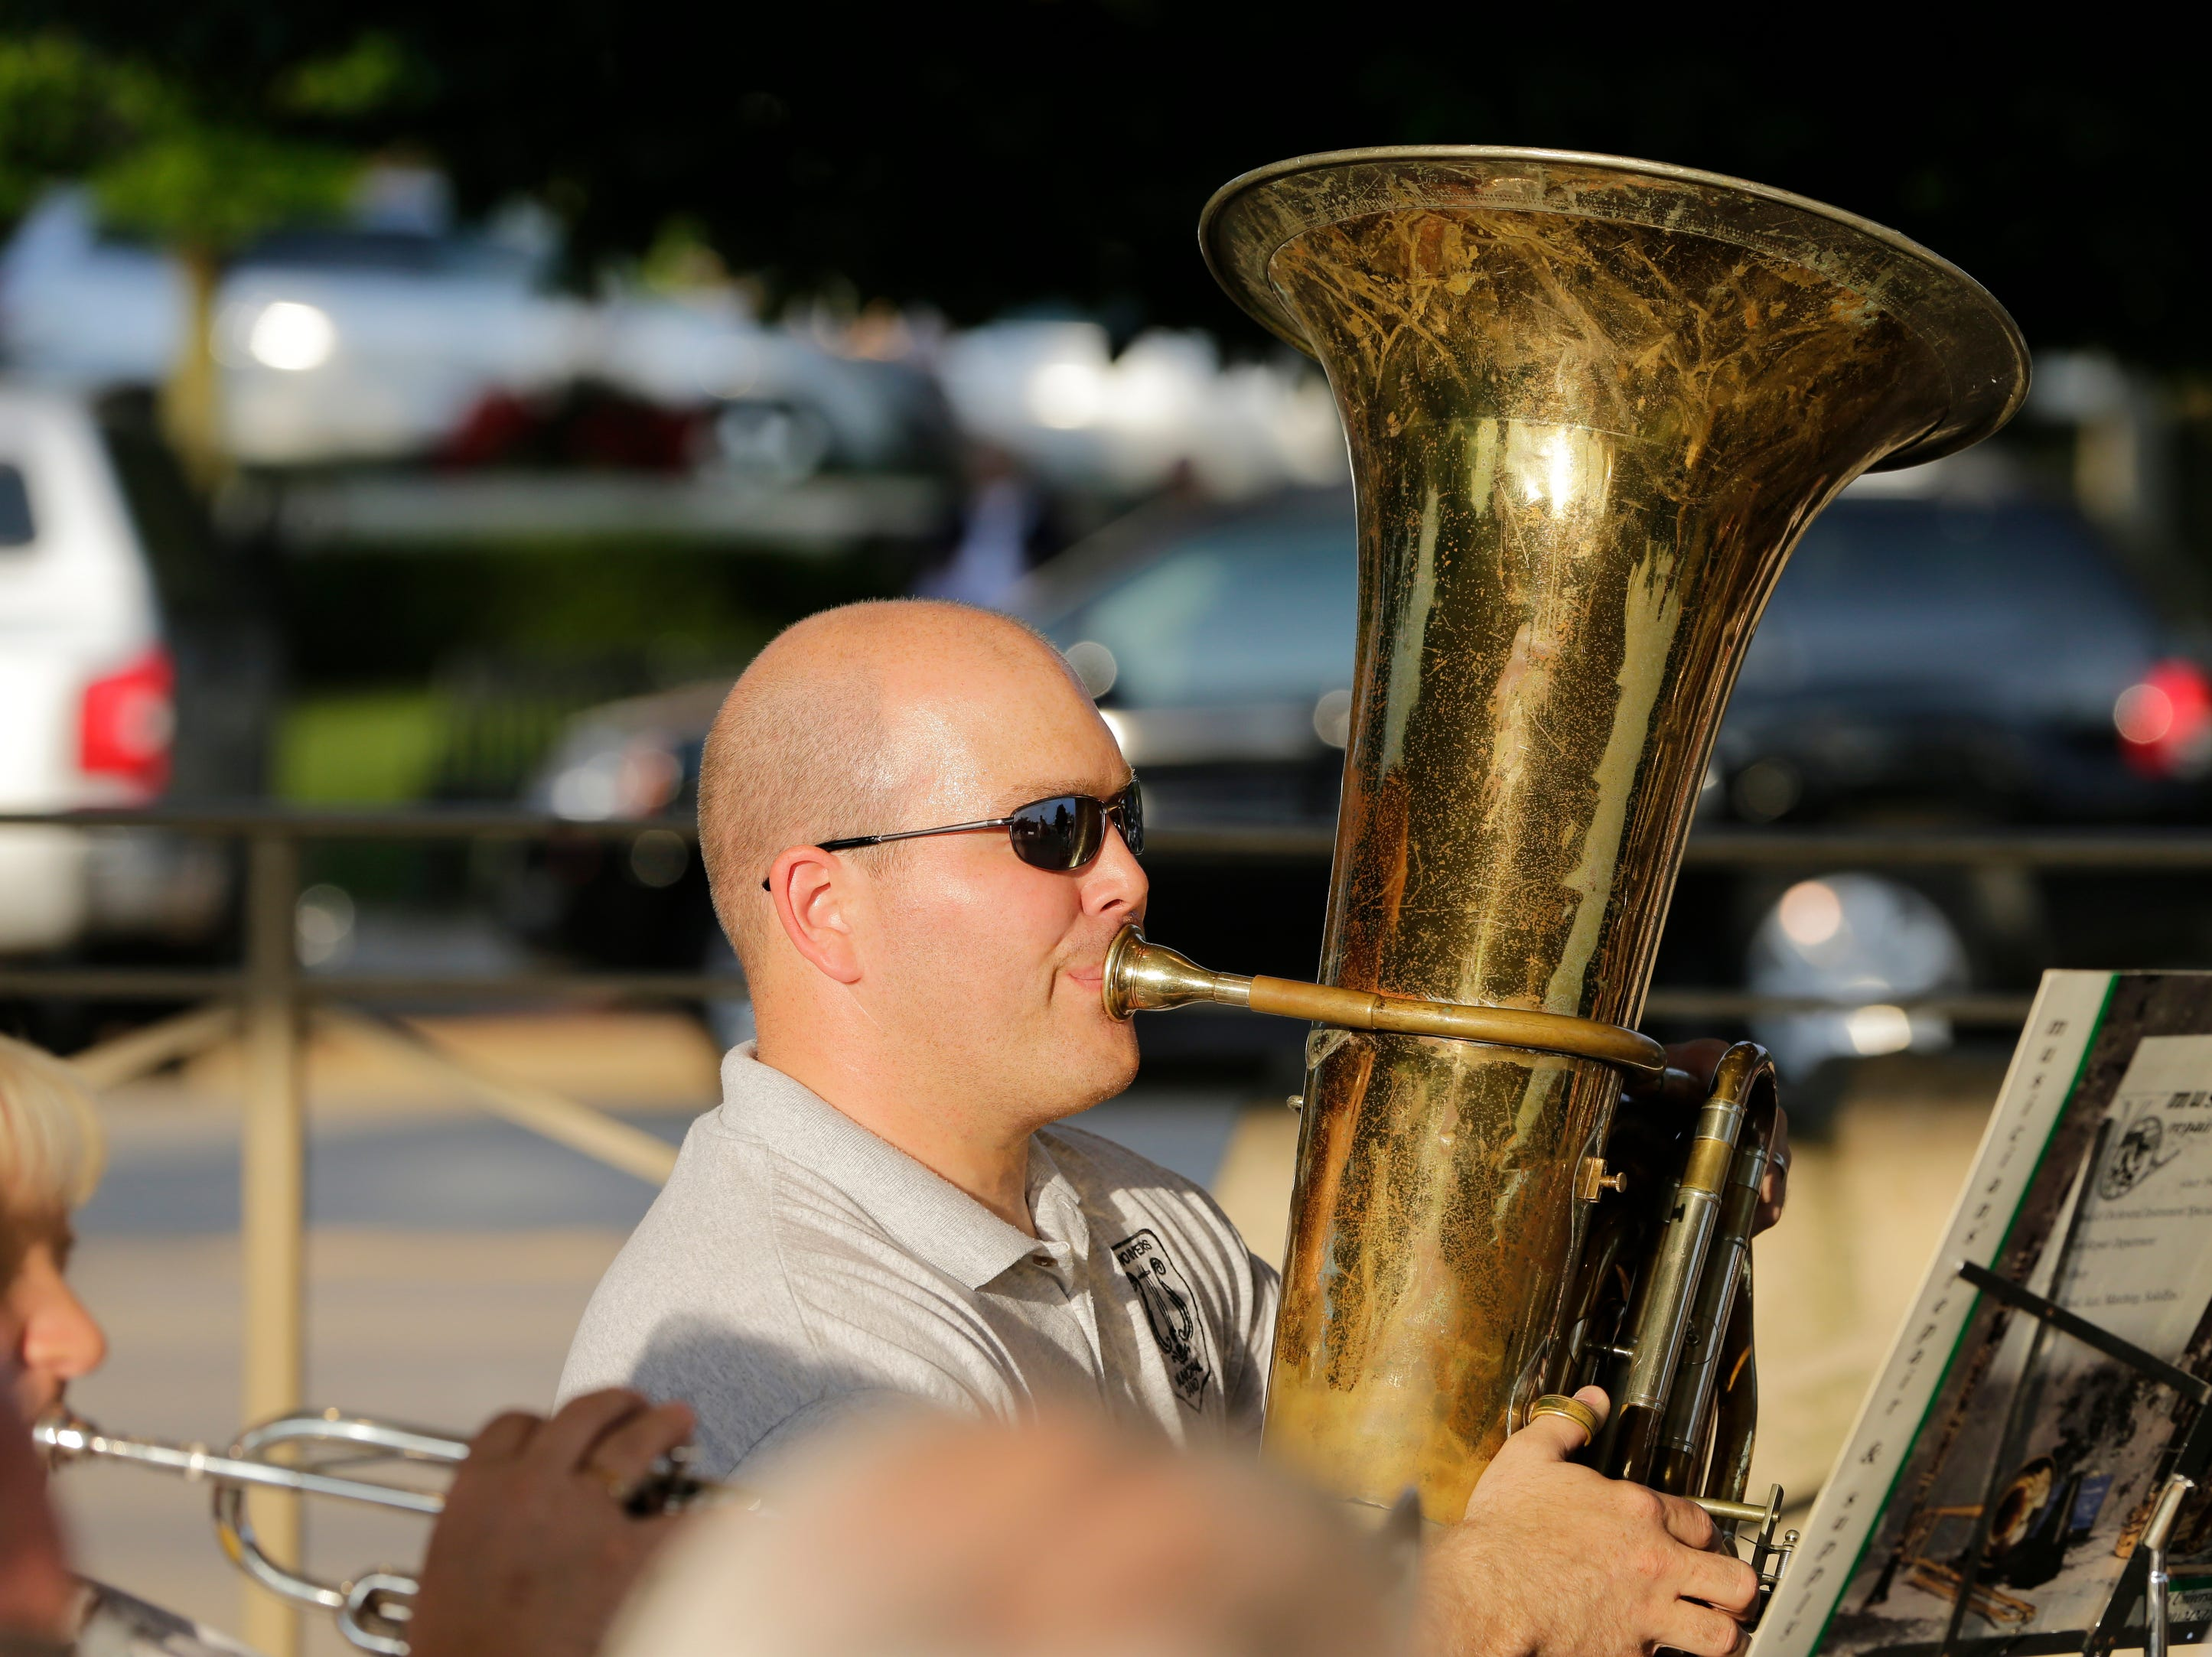 Chris Burton plays the Tuba as the Two Rivers Community Band plays their final concert of the season at Central Park Thursday, August 9, 2018, in Two Rivers, Wis. Josh Clark/USA TODAY NETWORK-Wisconsin